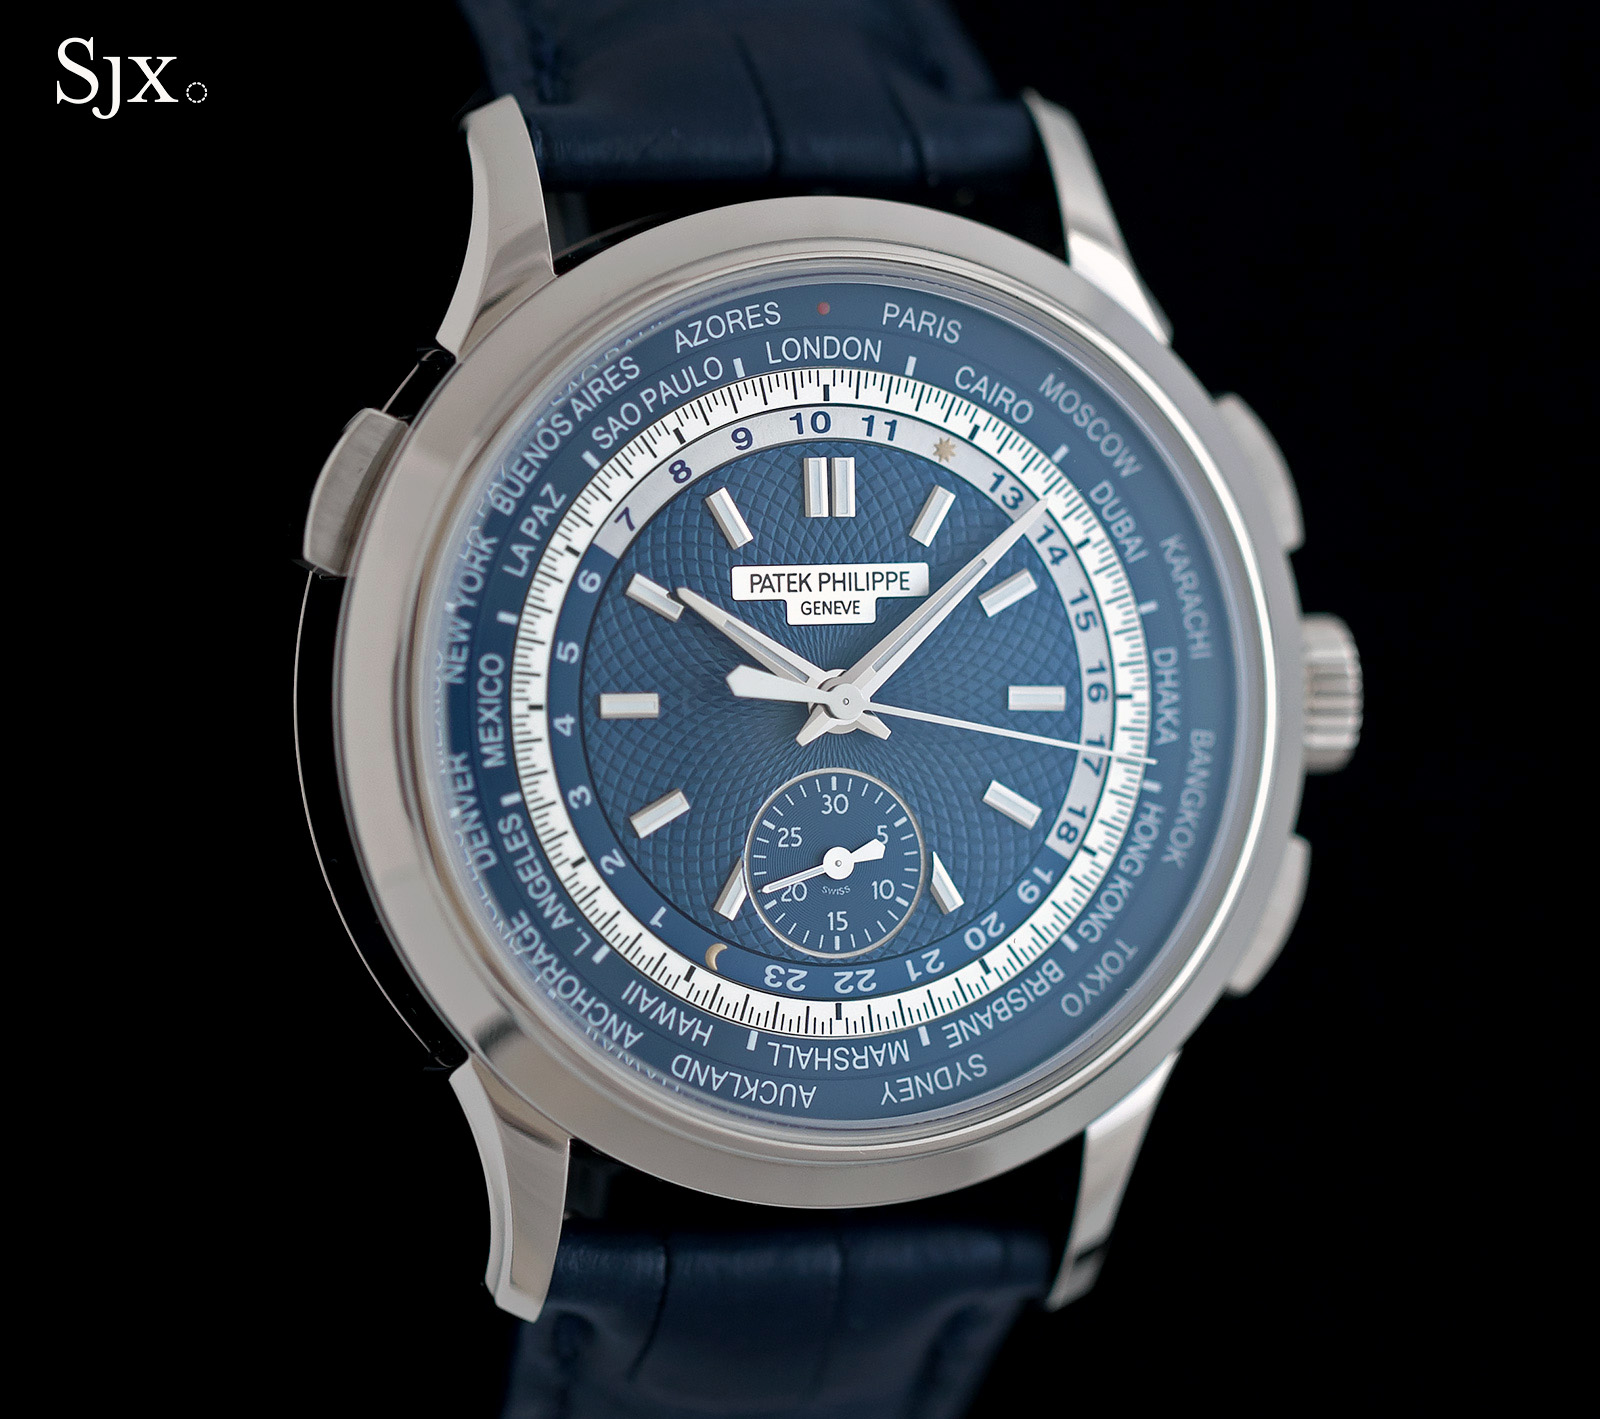 Patek Philippe World Time Chronograph Ref. 5930G 3